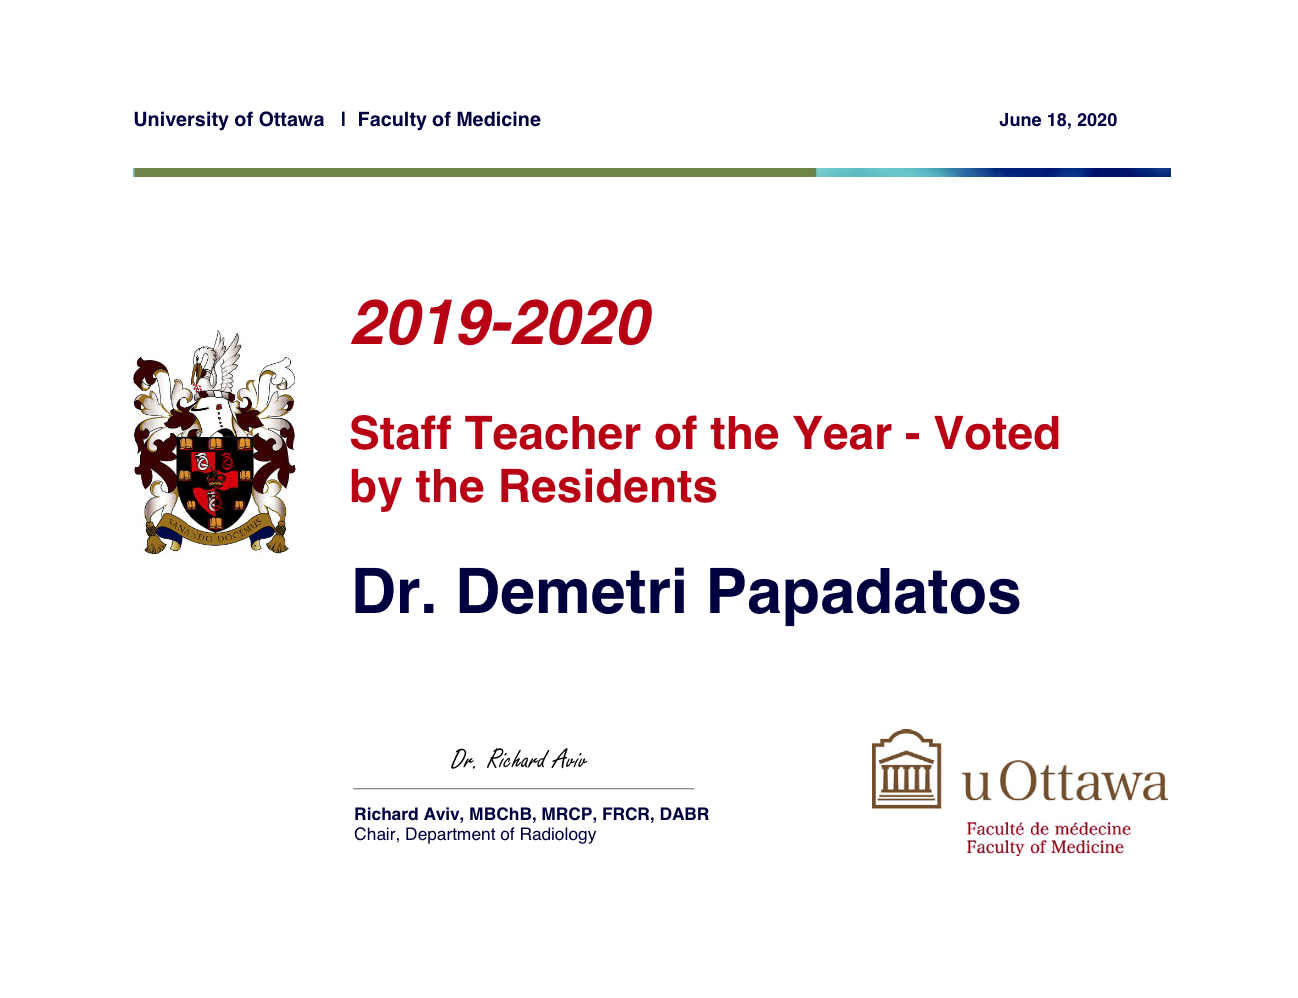 2019-2020 Staff Teacher of the Year - Voted by the Residents. Winner is Dr. Demetri Papadatos